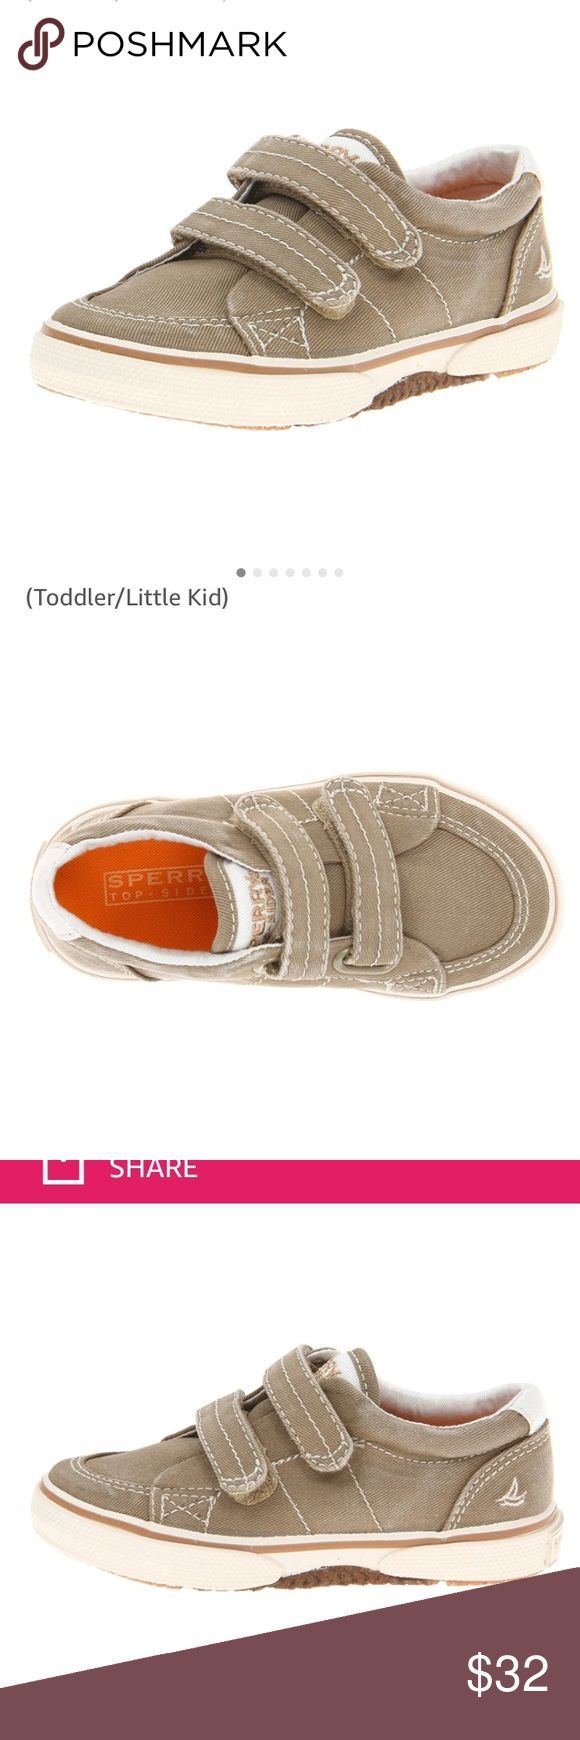 Sperry Top Sider Halyard Toddler Shoes Toddler Boys top slider Haylard H&L Khaki size 6wide. Never worn. New in box. Very cute shoes. Sperry Top-Sider Shoes